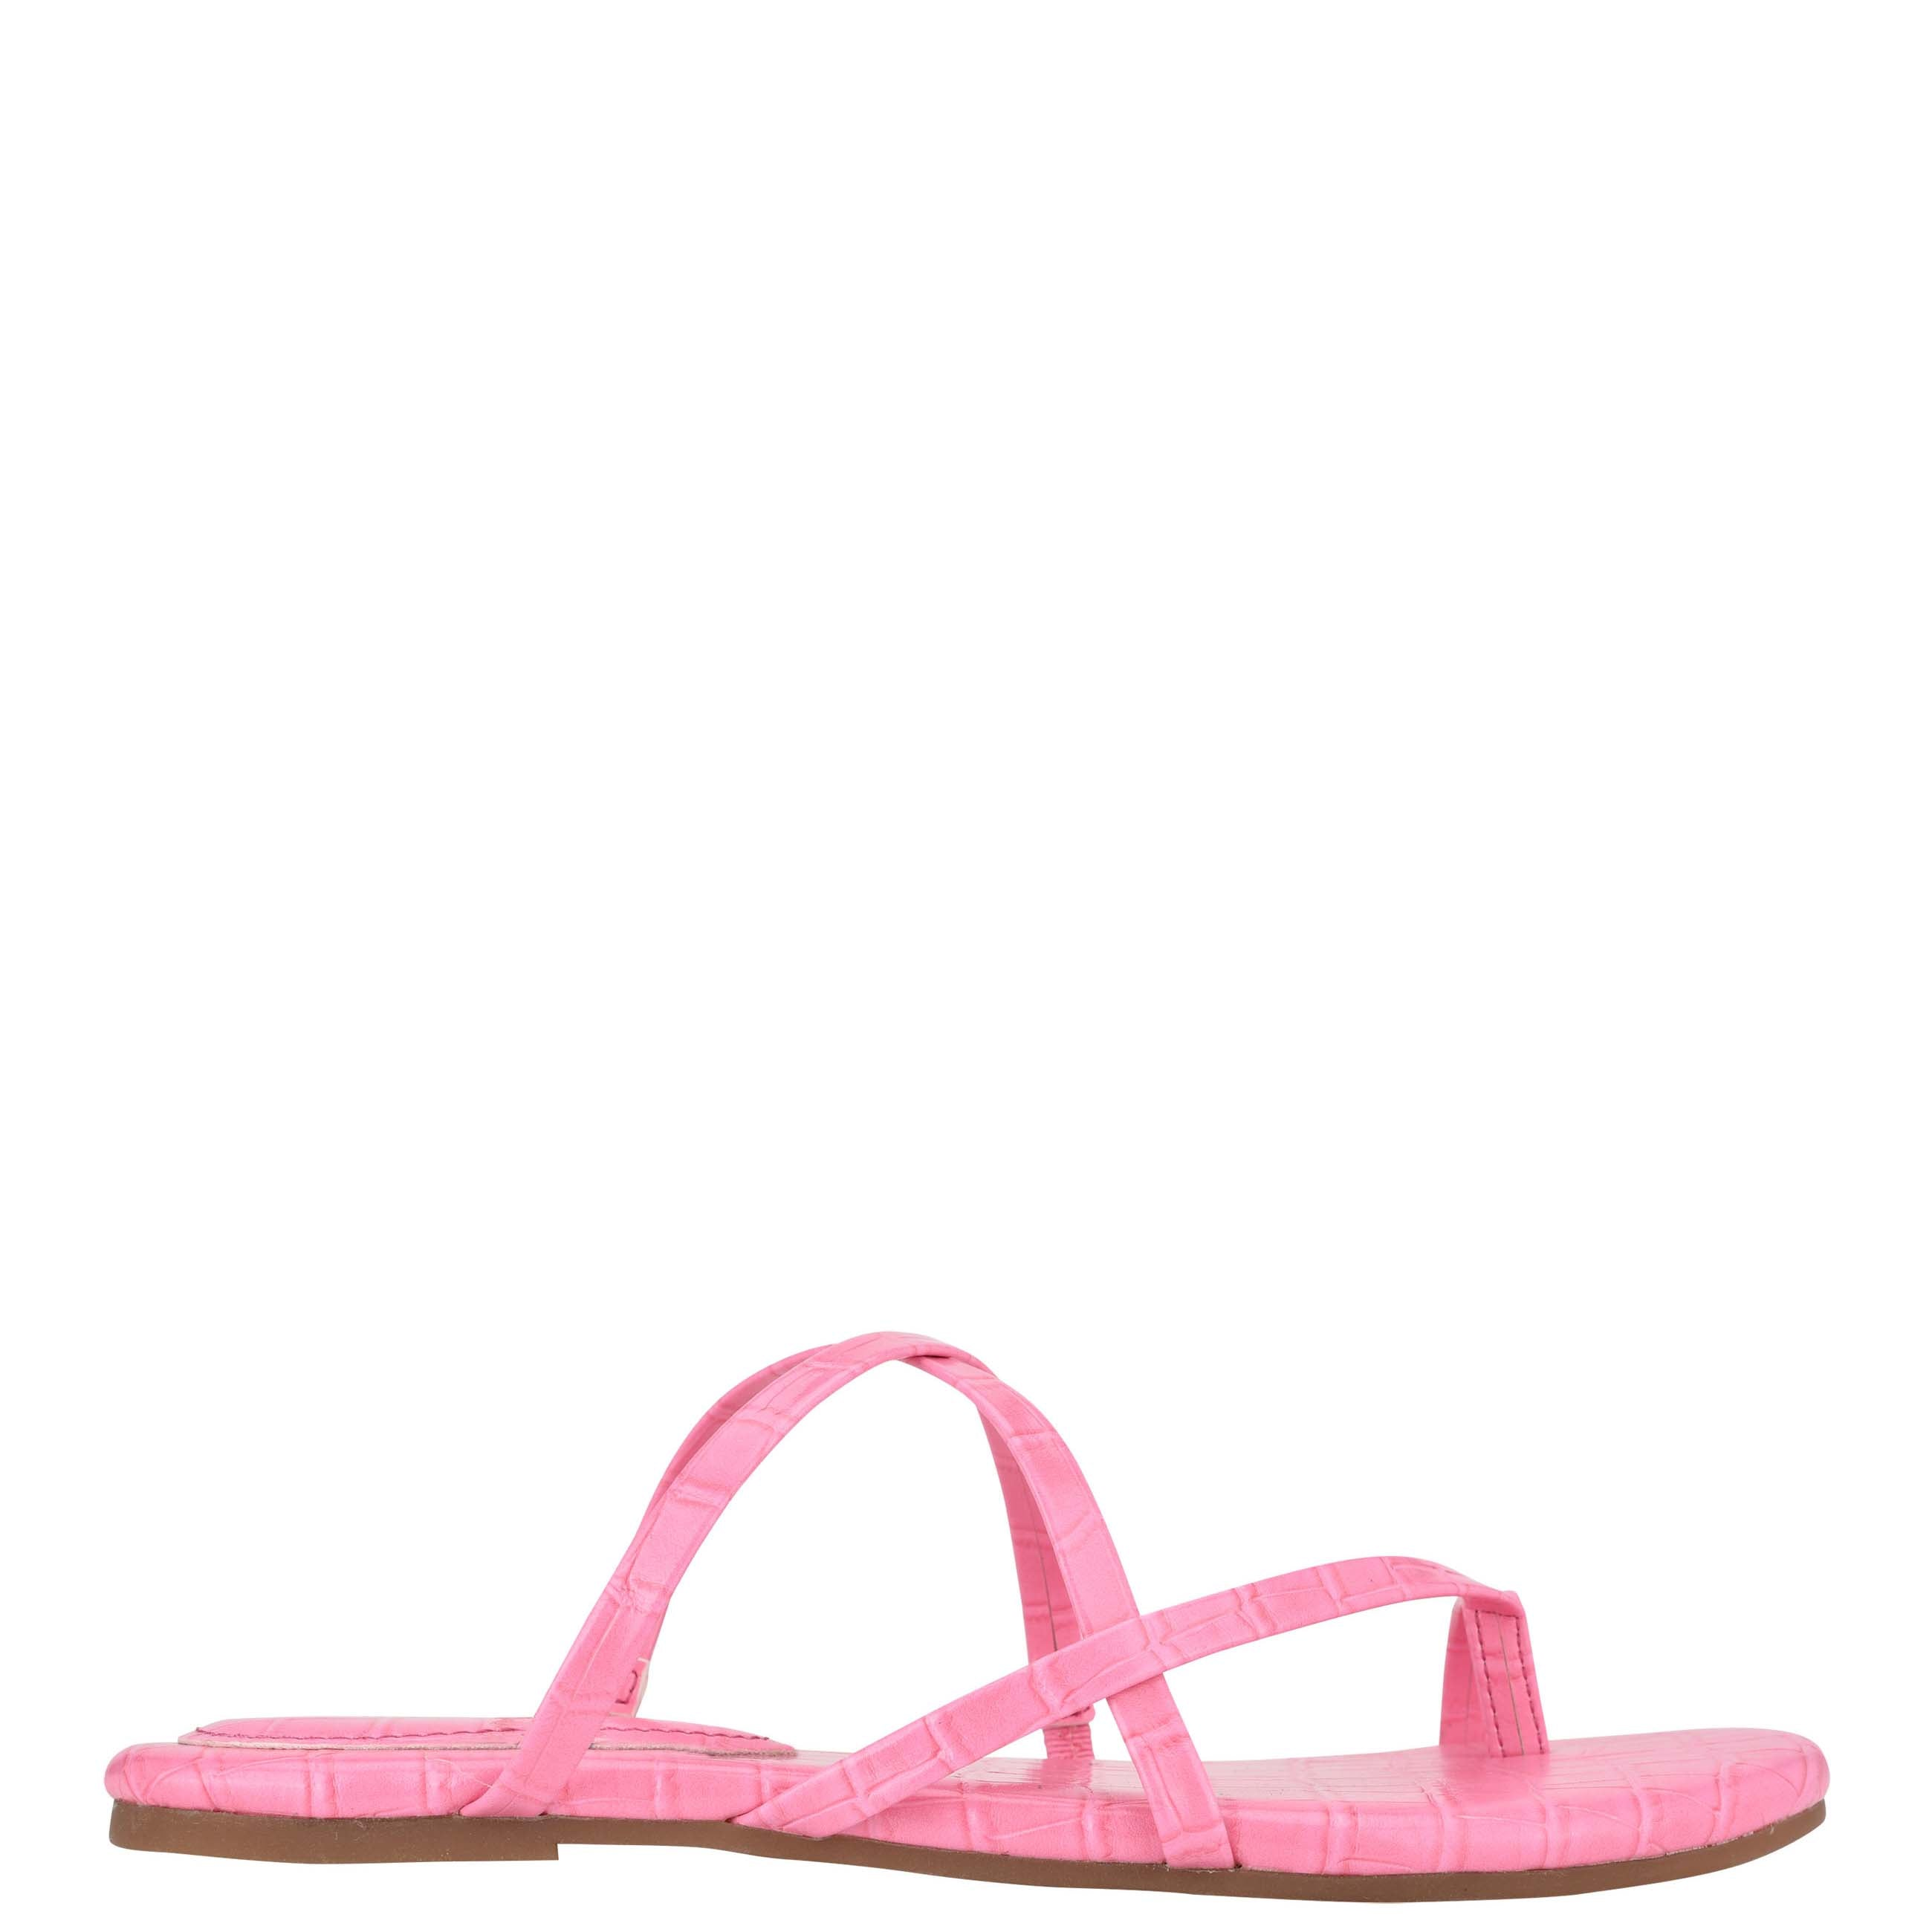 NINEWEST Brice Flat Toe Ring Slide Sandals